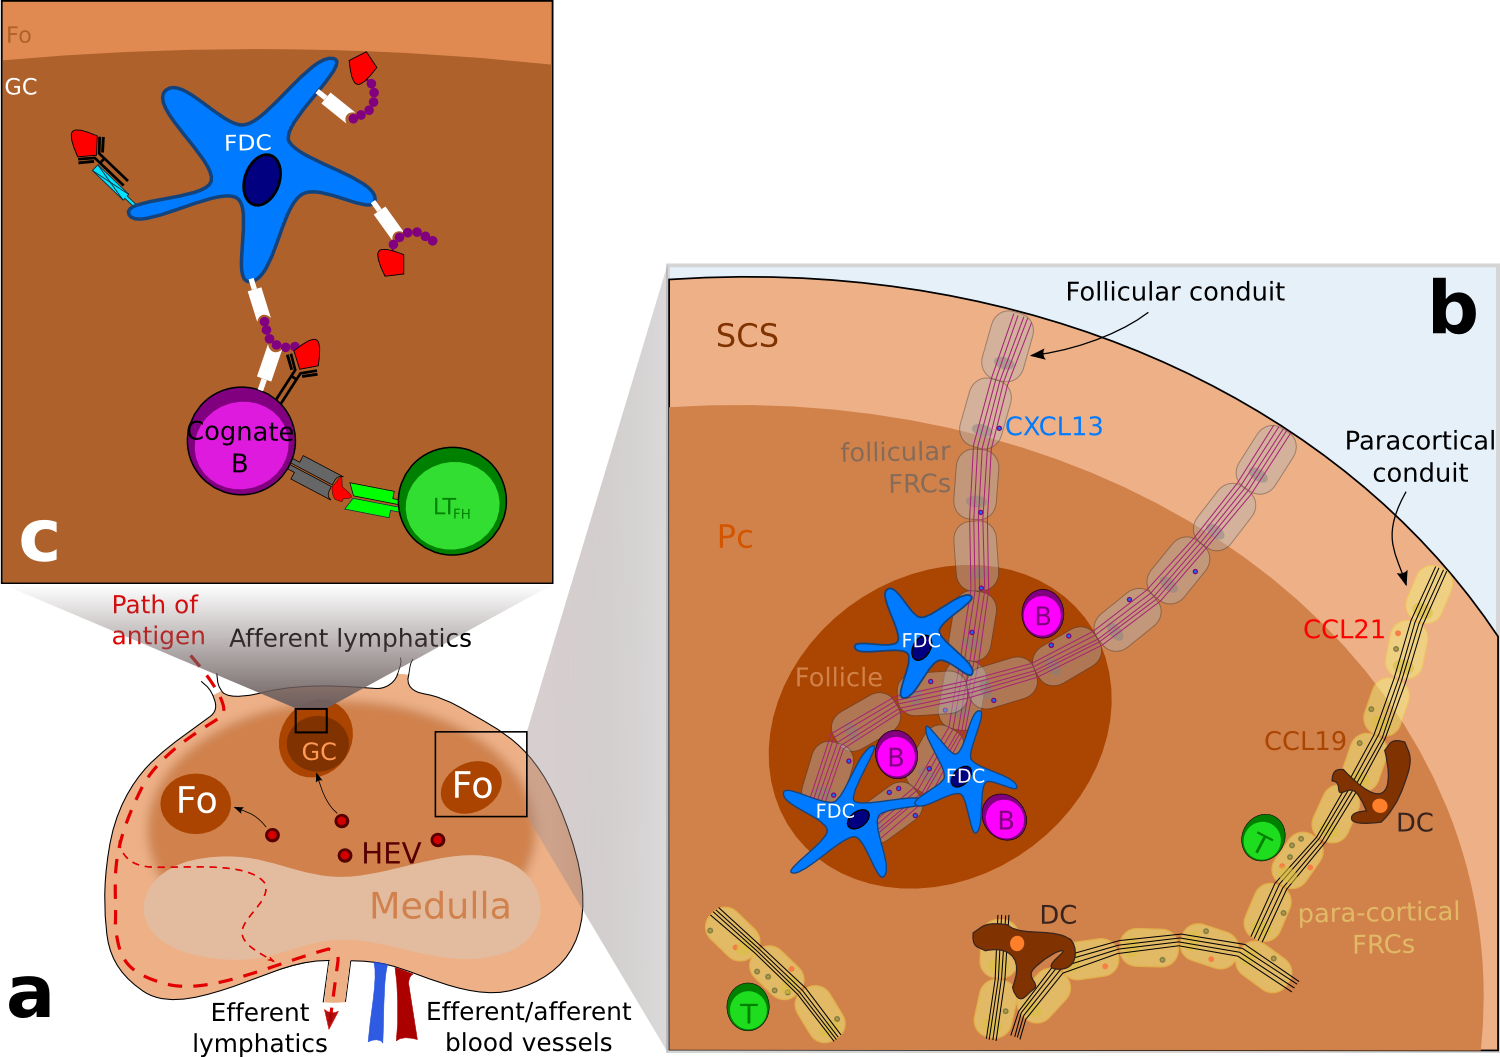 Schematic representation of the structure of a lymph node.